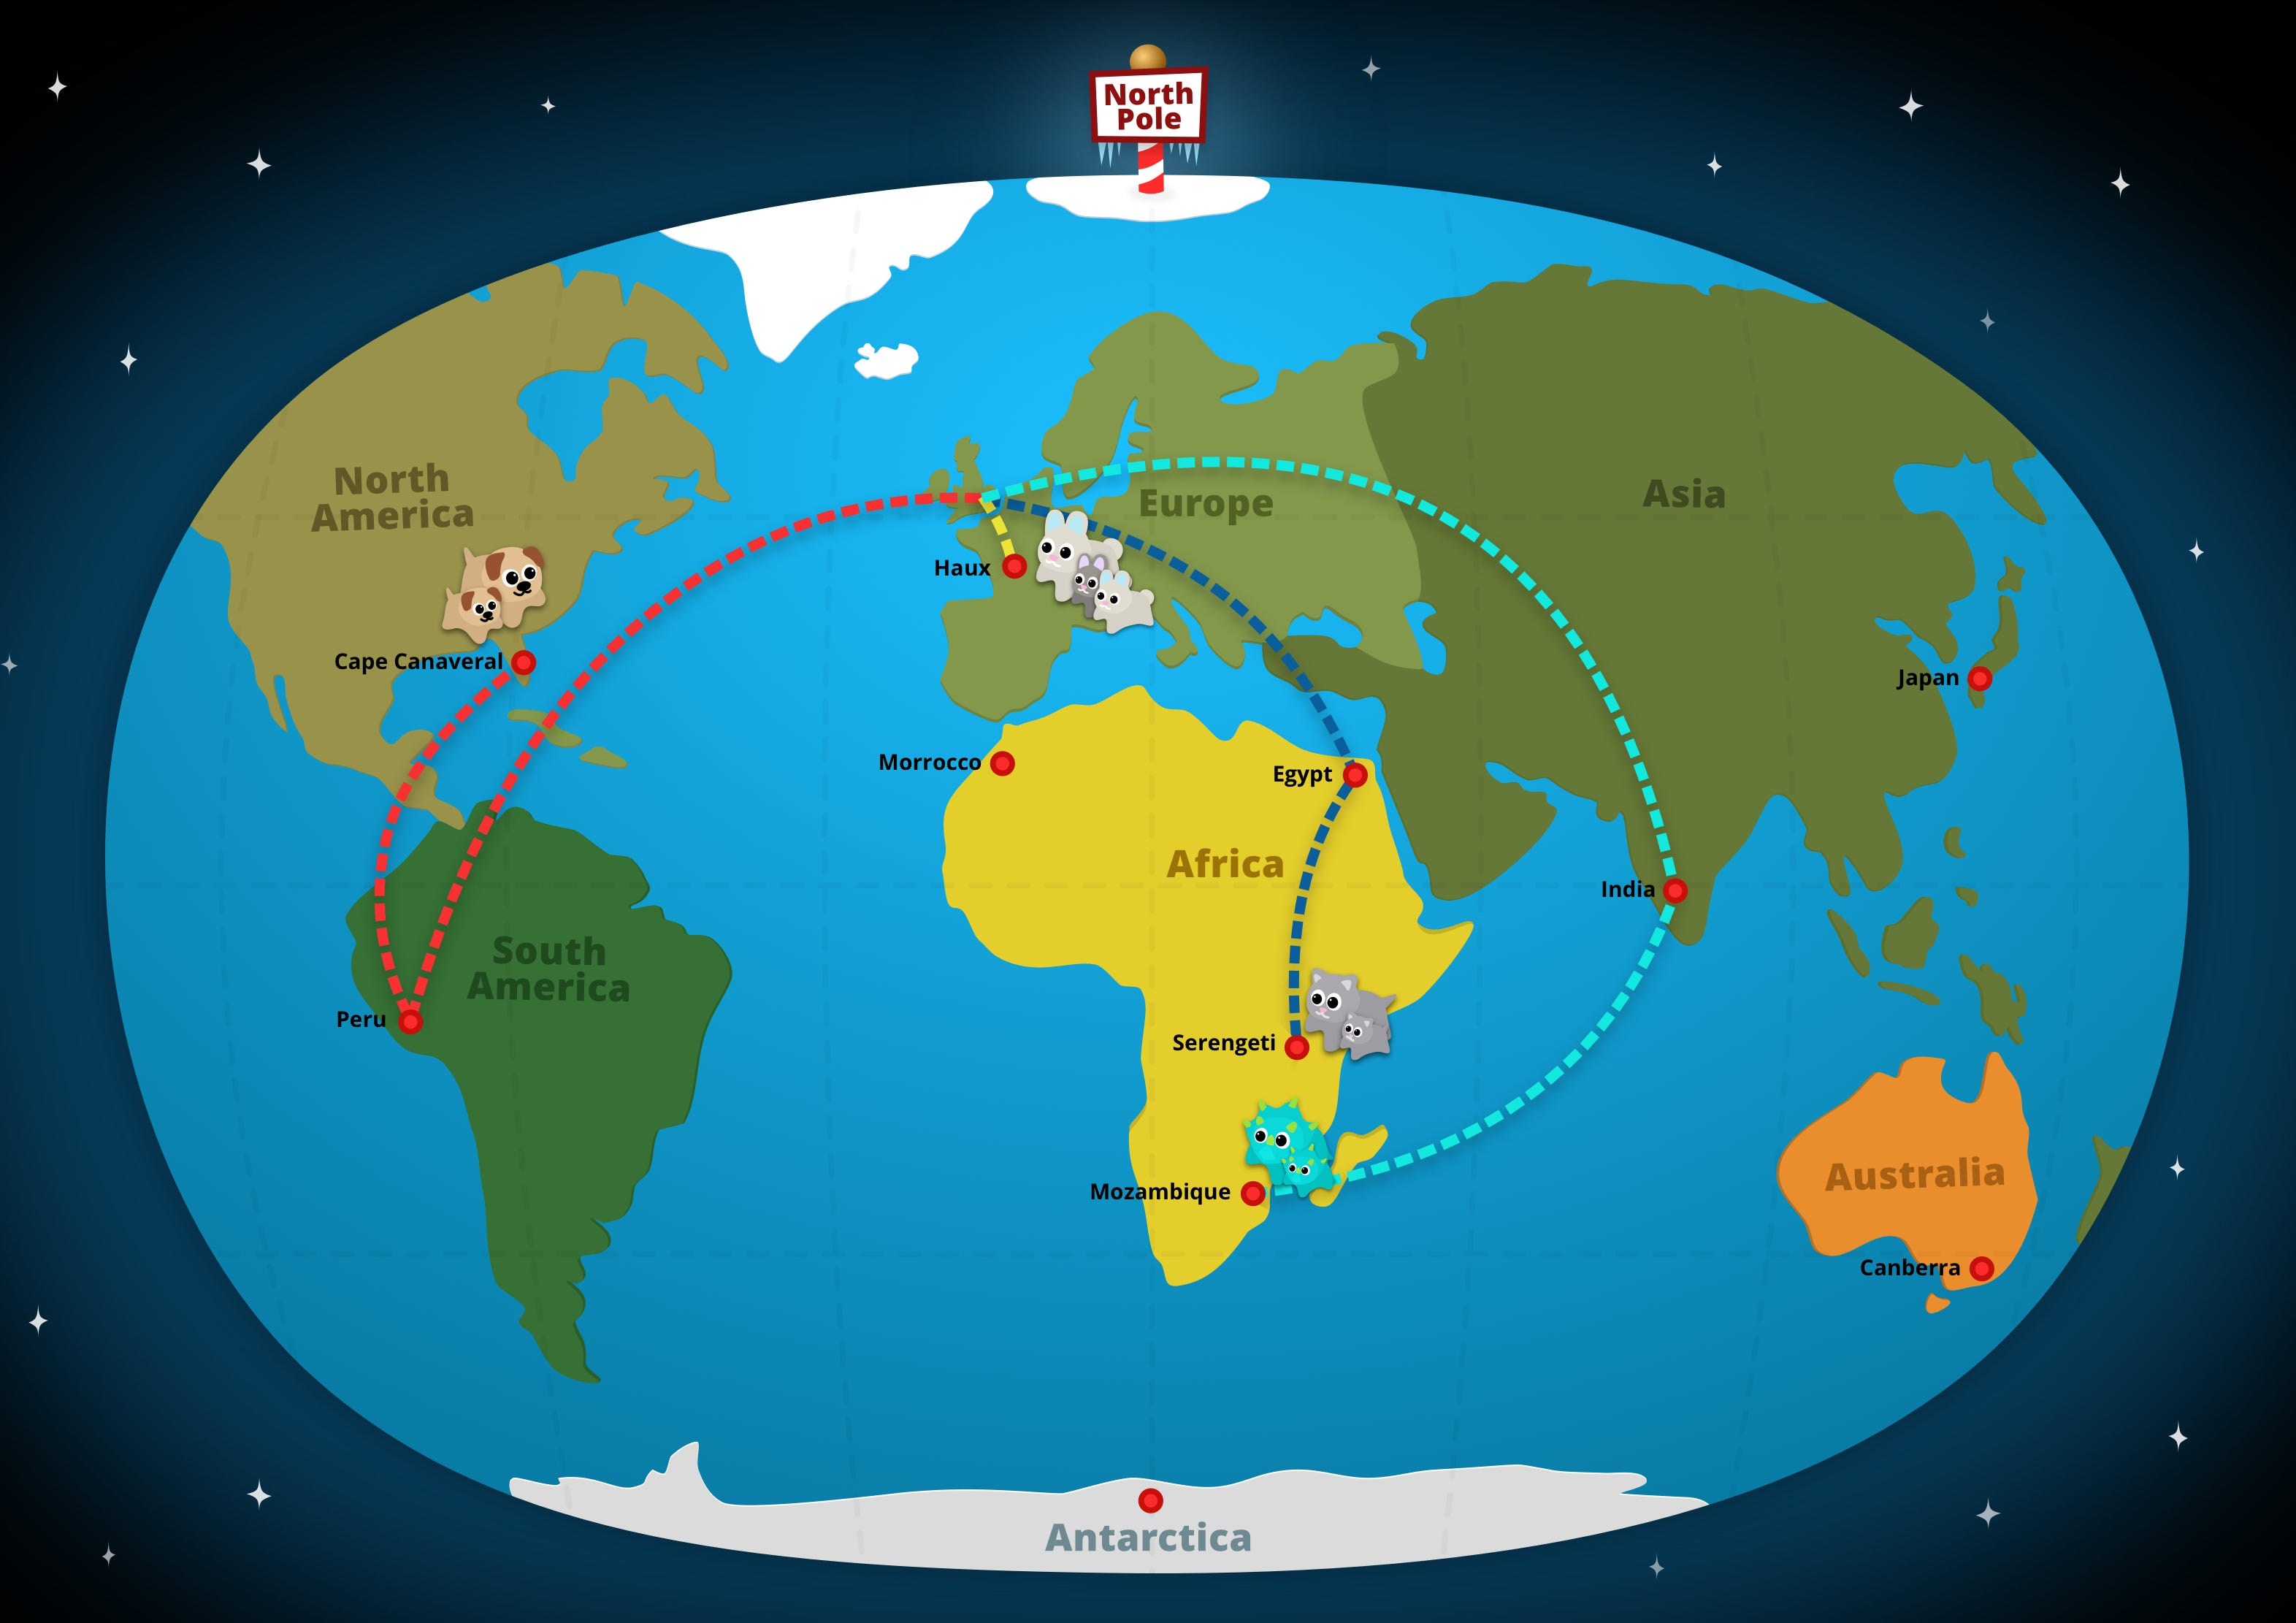 Coding Critters World Adventure - Global travel routes